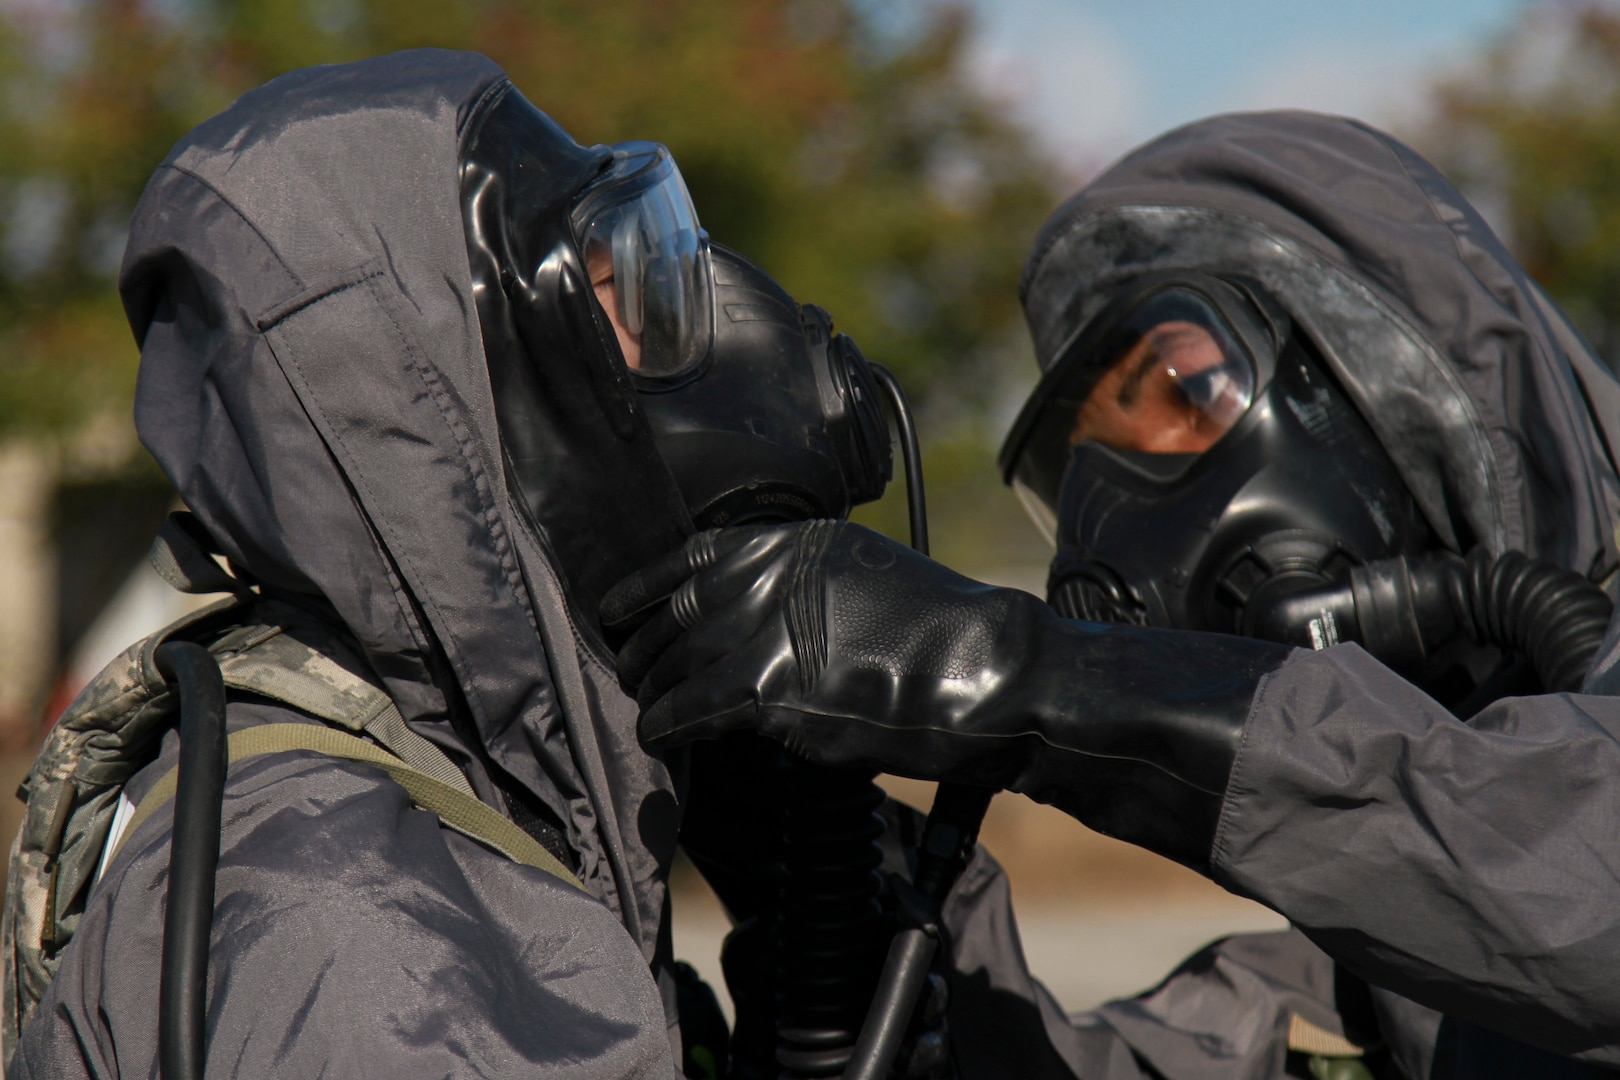 Pfc. Jayson Morris-Dunlap (right), a signal support systems specialist, checks the mask of Pfc. Wenhui Huang (left), a chemical, biological, radiological and nuclear specialist, during a mass casualty decontamination lane at the Nelson W. Wolff Municipal Stadium Nov. 5. Both are assigned to the 181st Chemical, Biological, Radioactive and Nuclear Company.